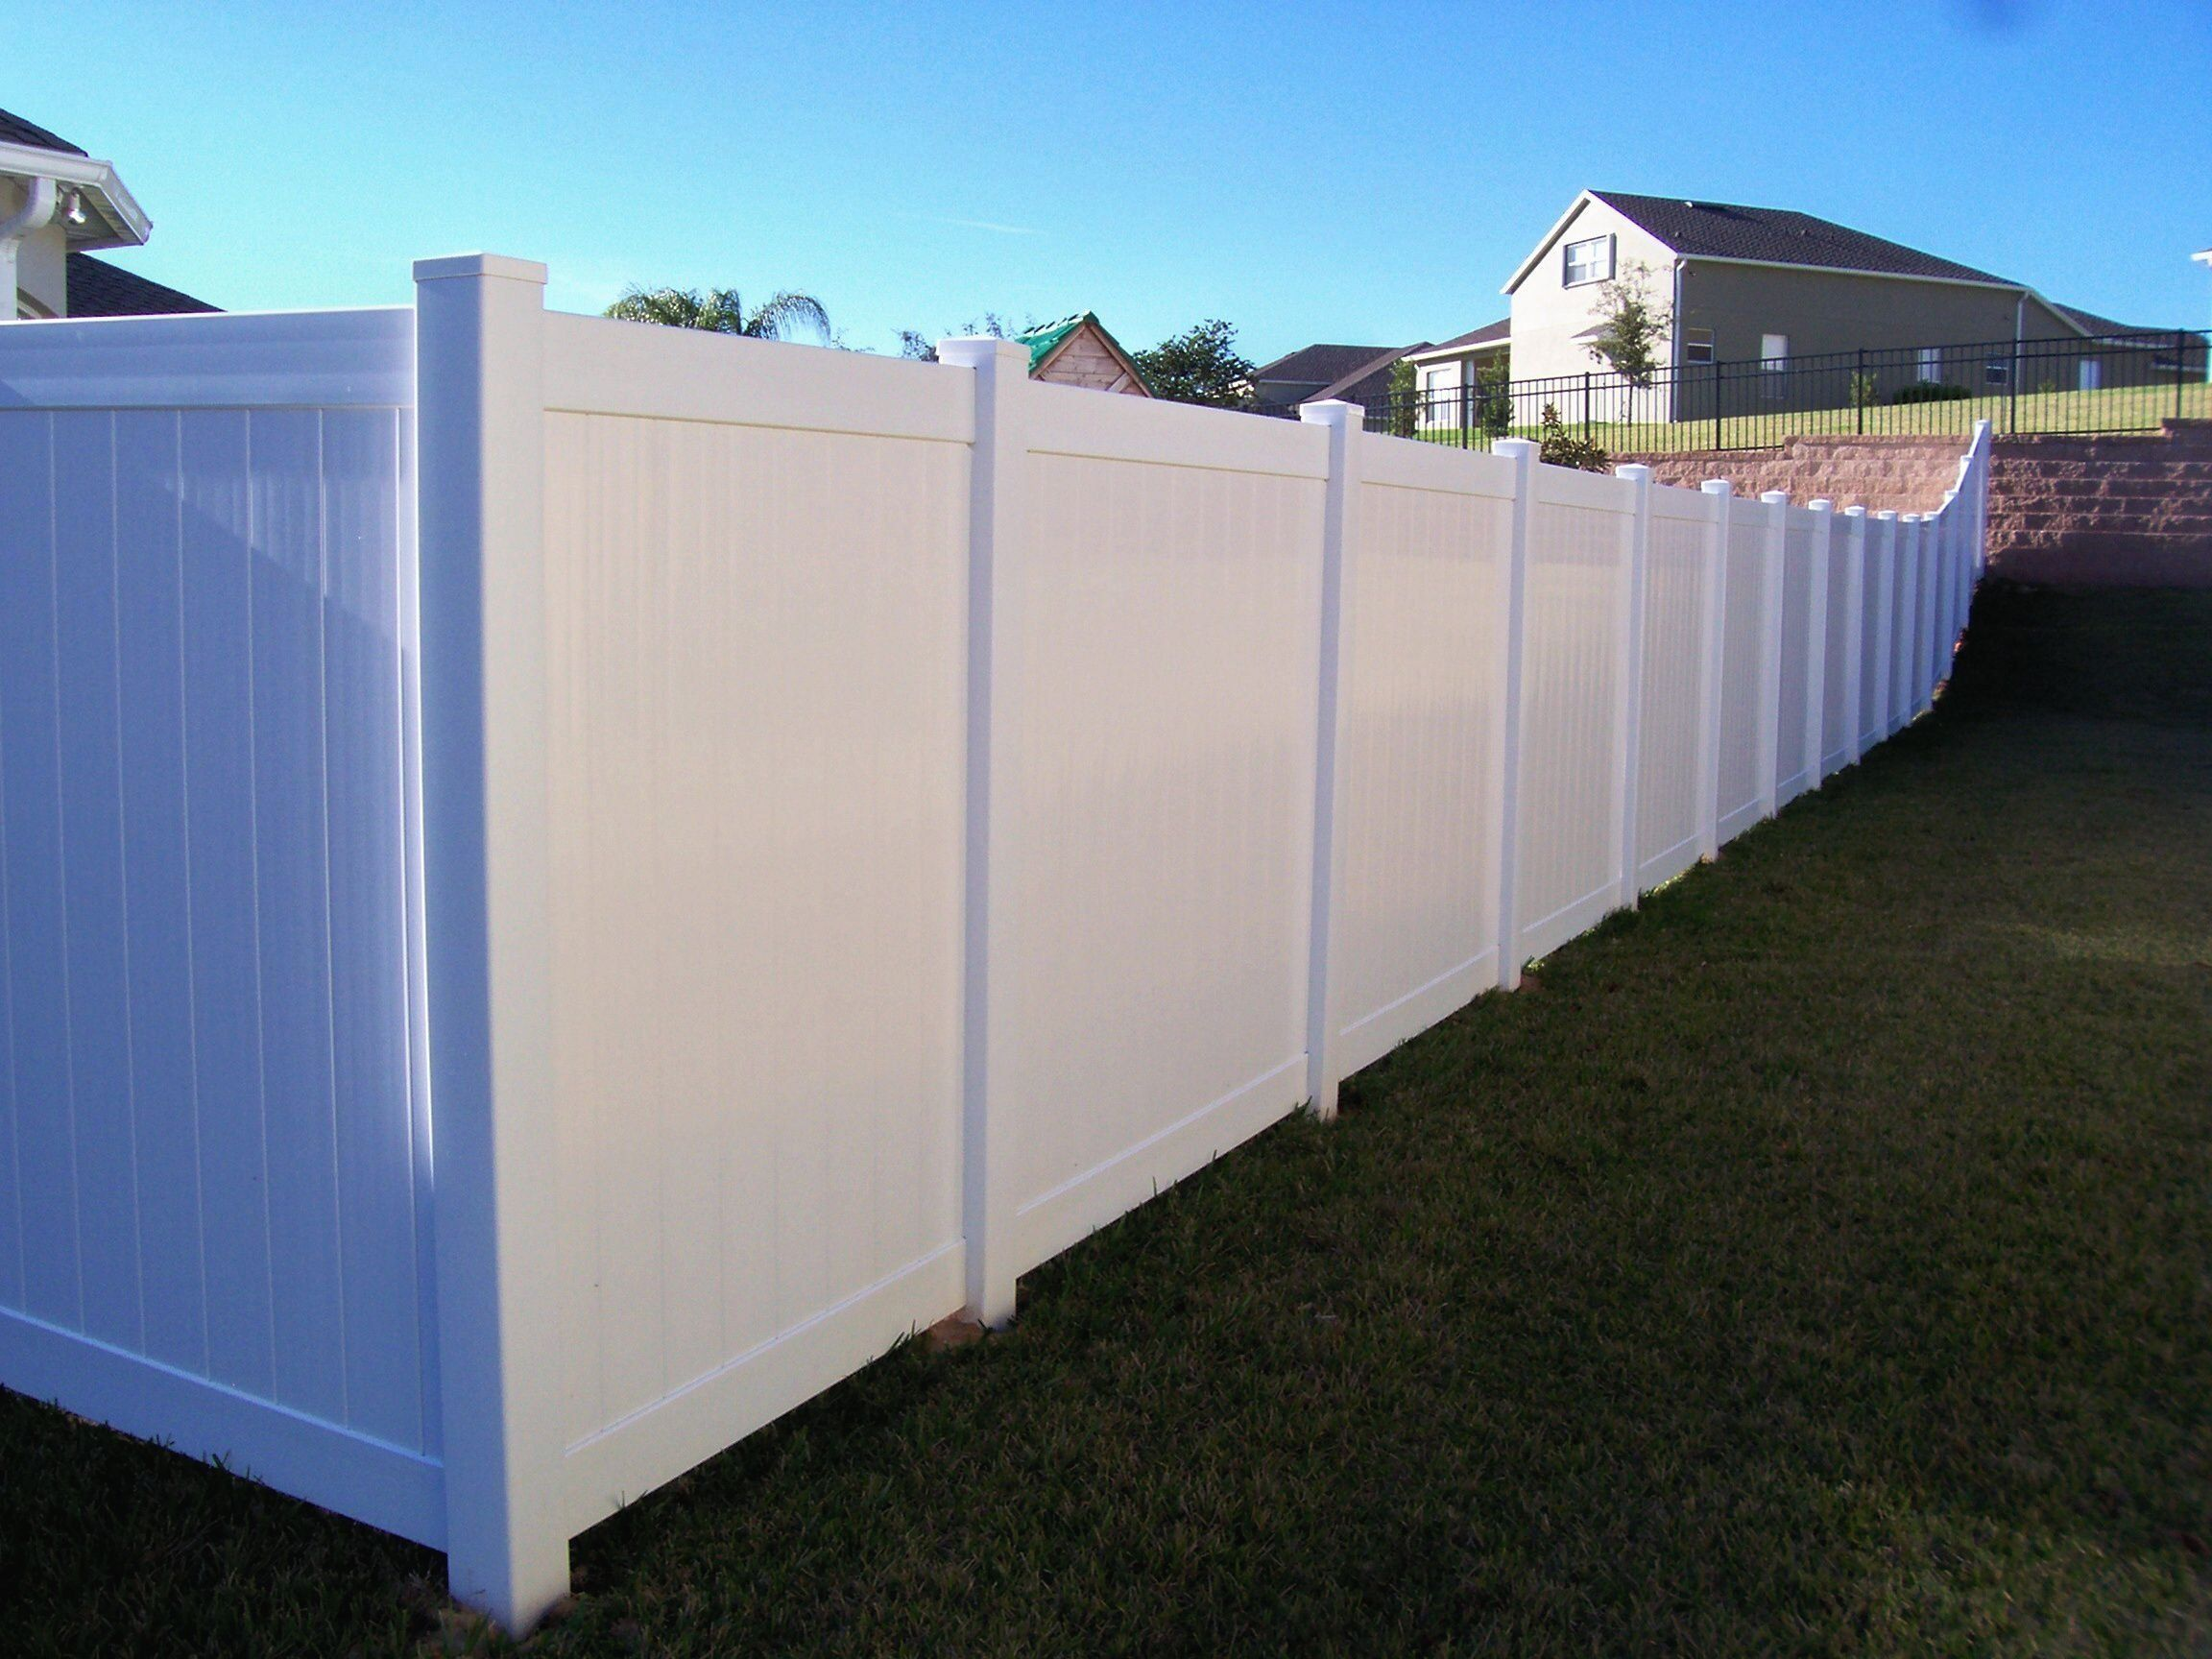 Vinyl Fence Modern Design 1000 In 2020 Vinyl Fence Backyard Fences Vinyl Privacy Fence